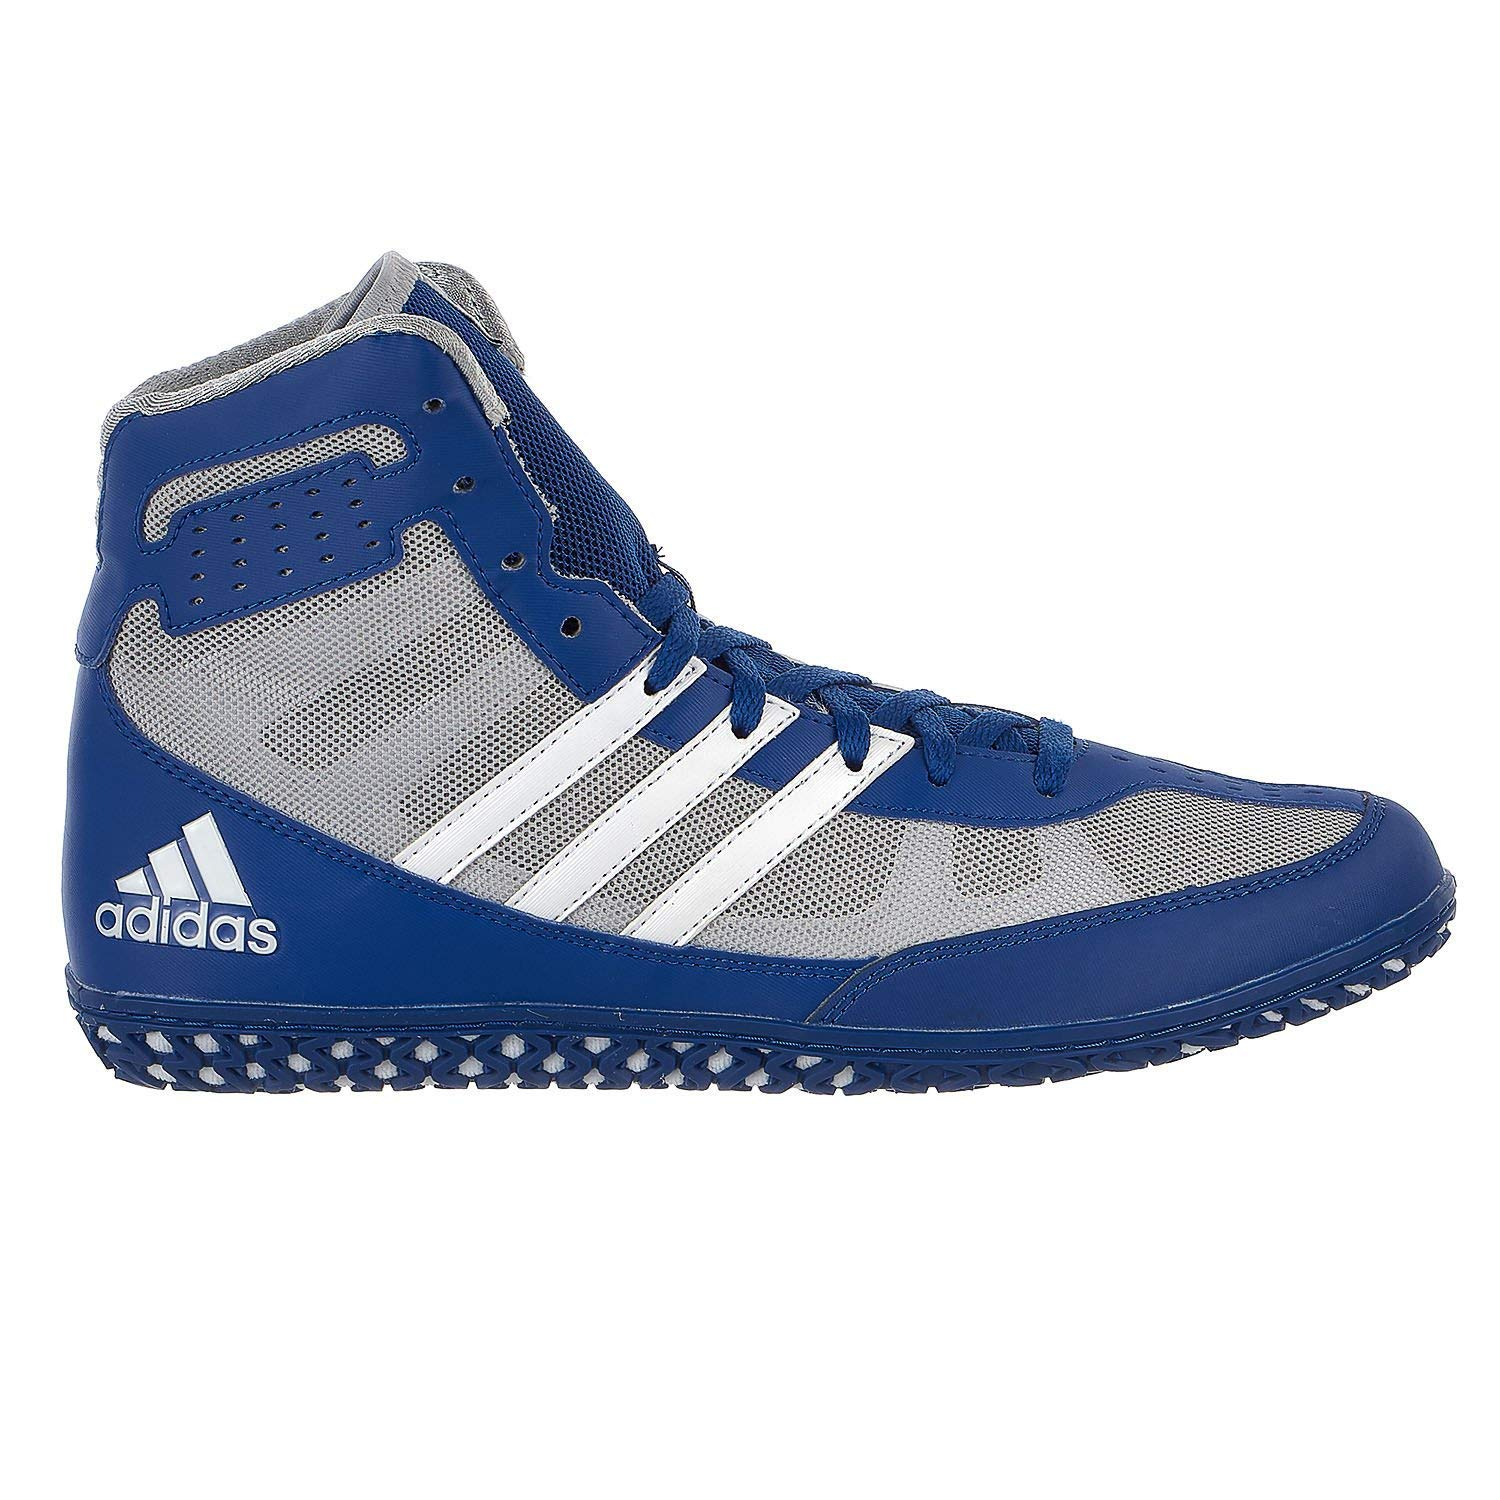 a75a1d6a74625c Adidas Men s Mat Wizard.3 Wrestling Shoes Black  Amazon.ca  Shoes   Handbags